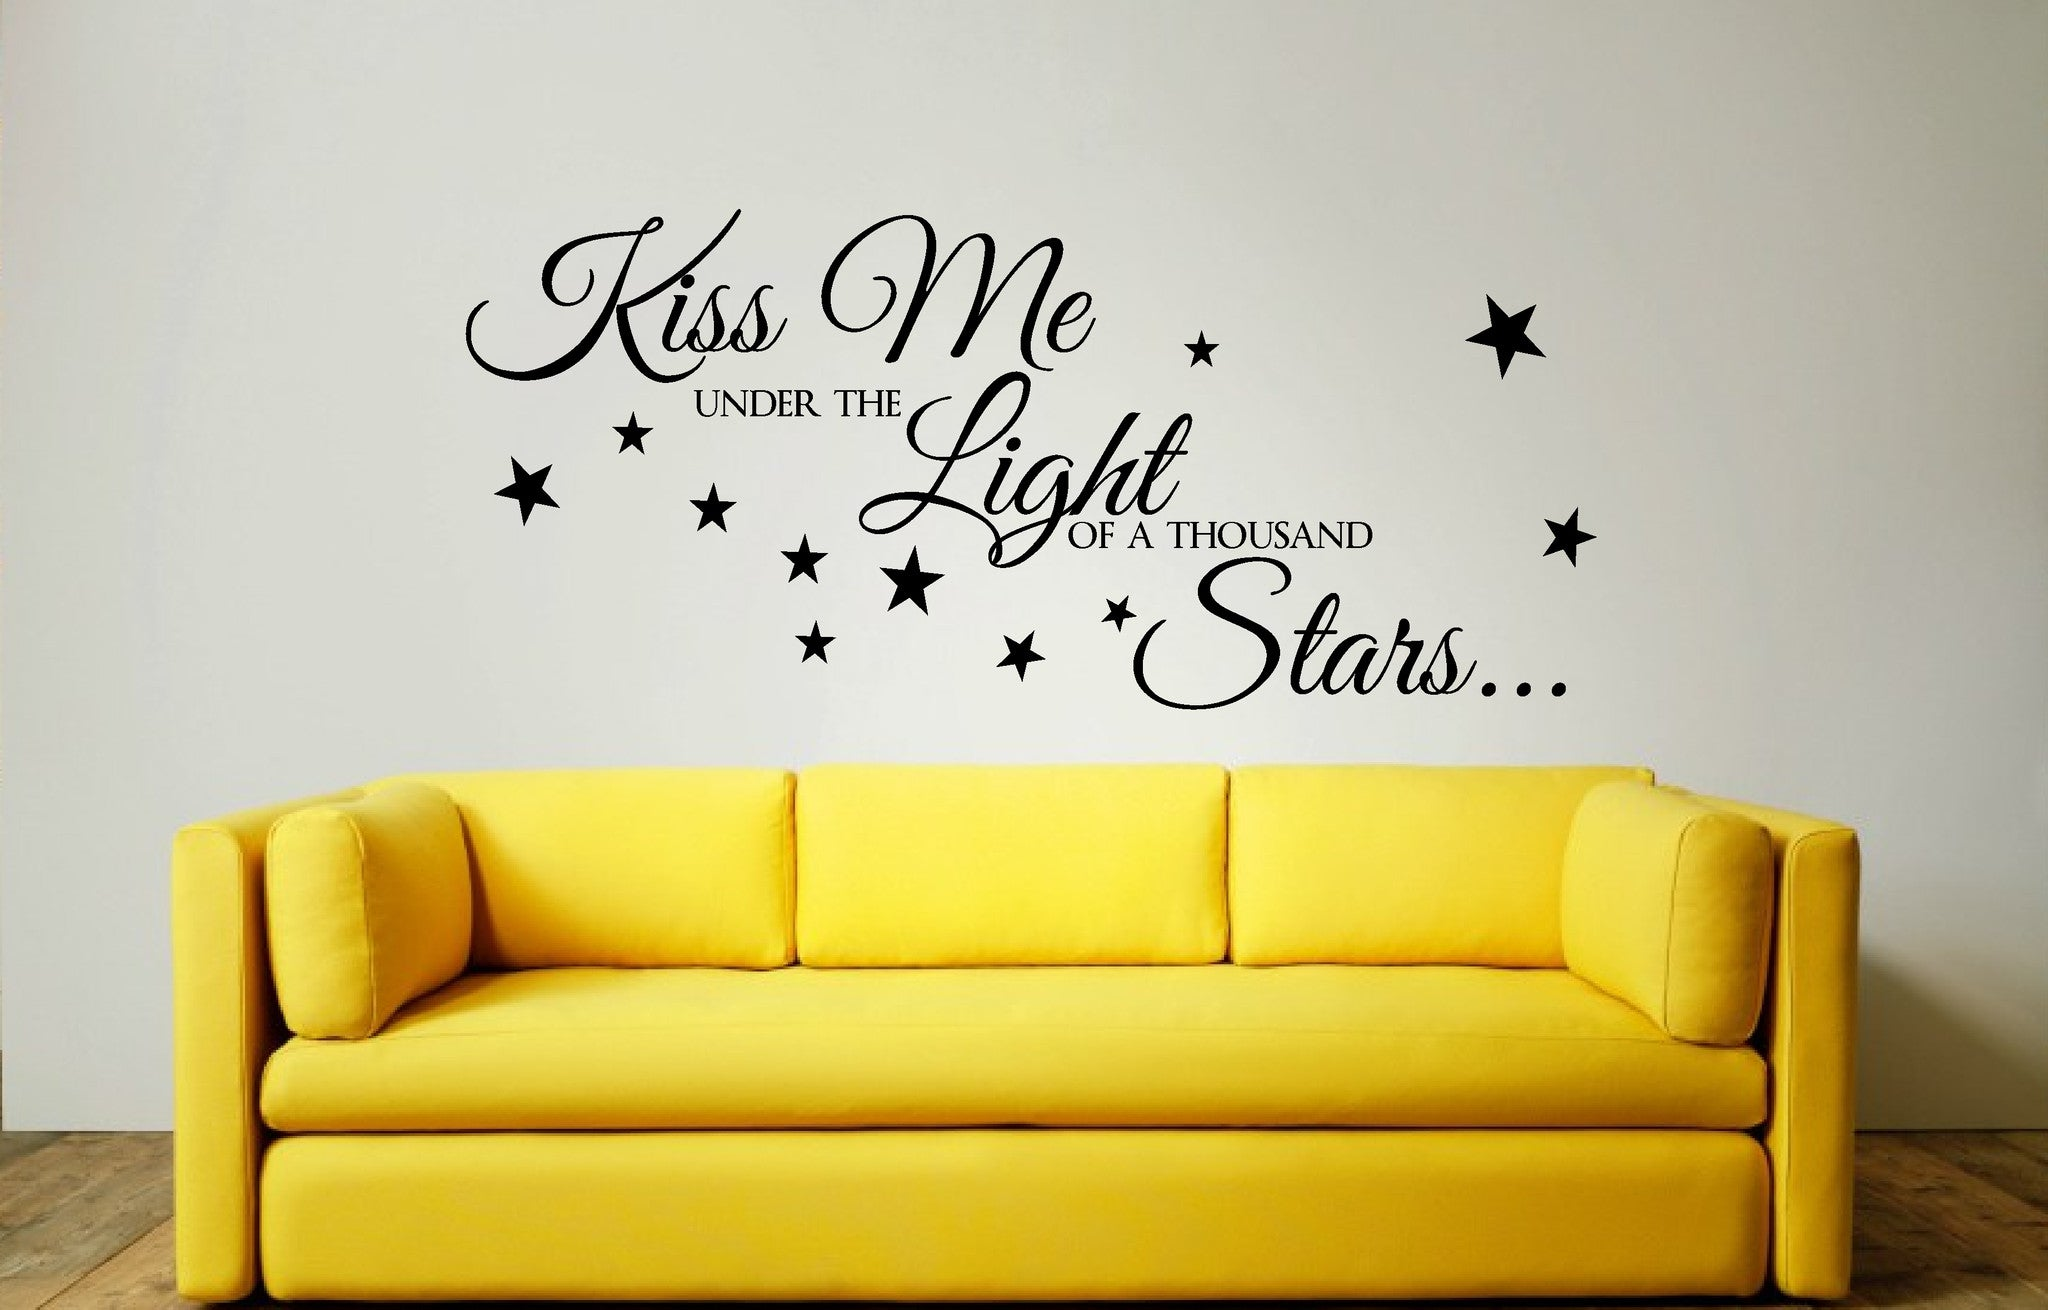 Kiss Me Under The Light of a Thousand Stars Wall Art Sticker, Decal ...